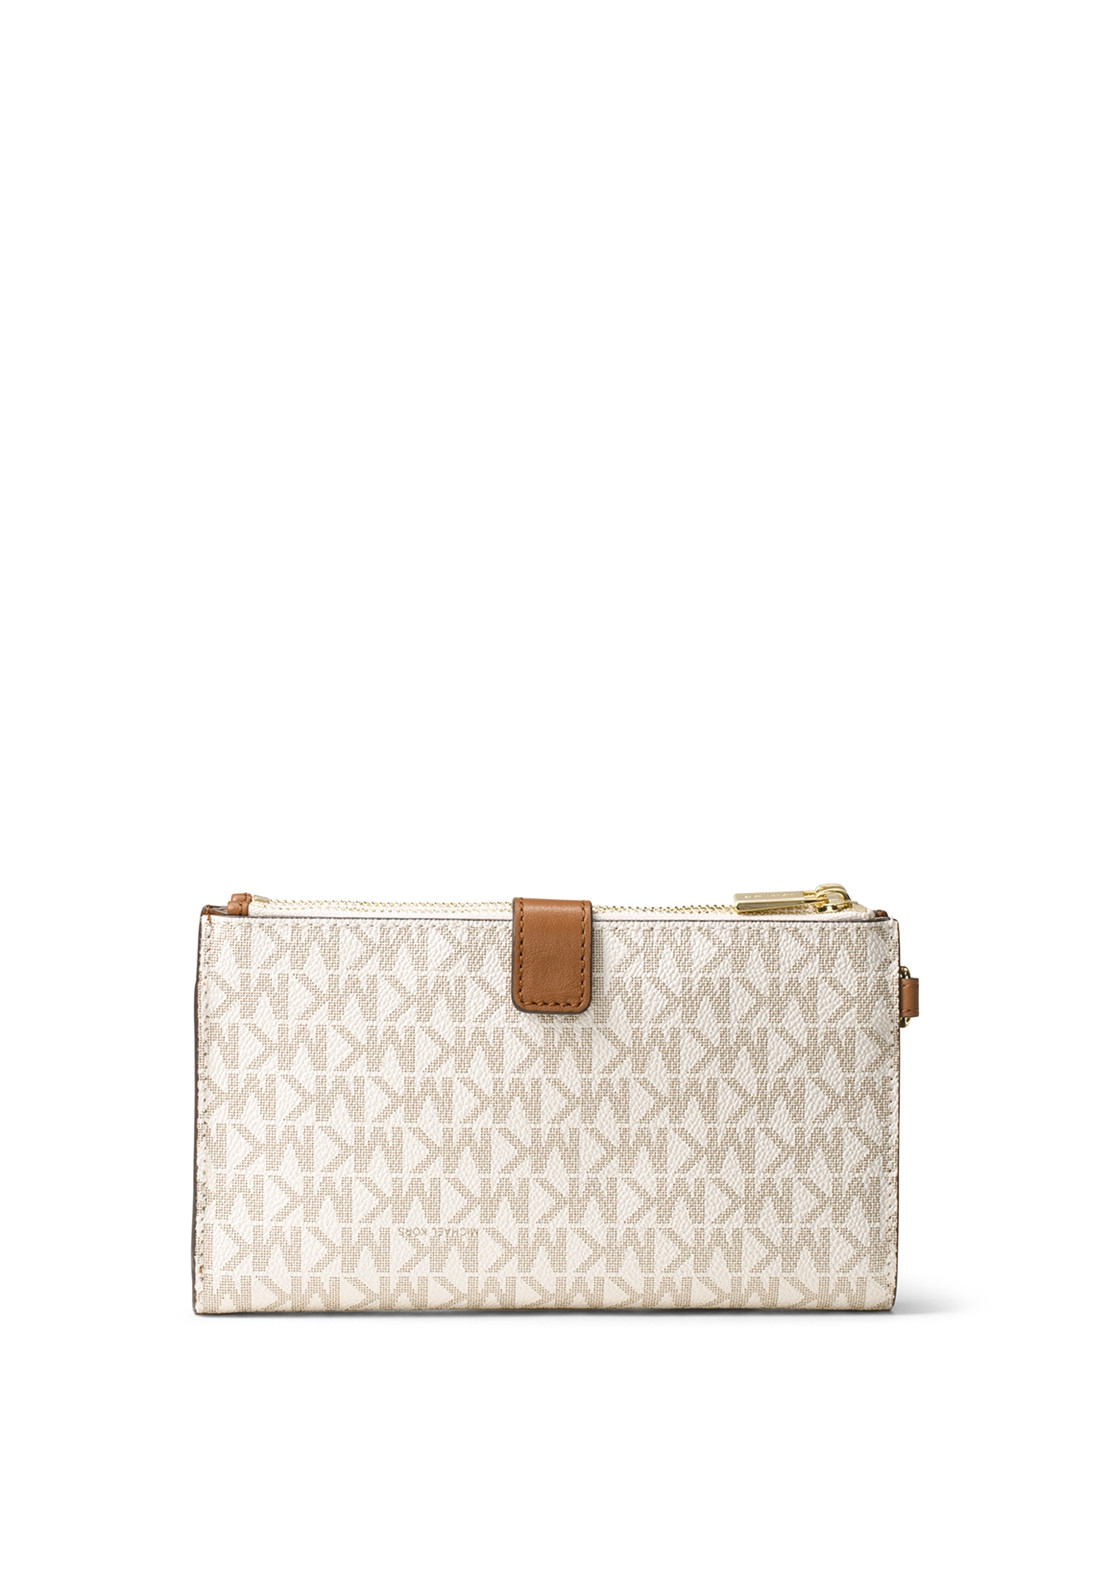 daa33b726d90 MICHAEL Michael Kors Adele Leather Wristlet Wallet, Vanilla. Be the first  to review this product